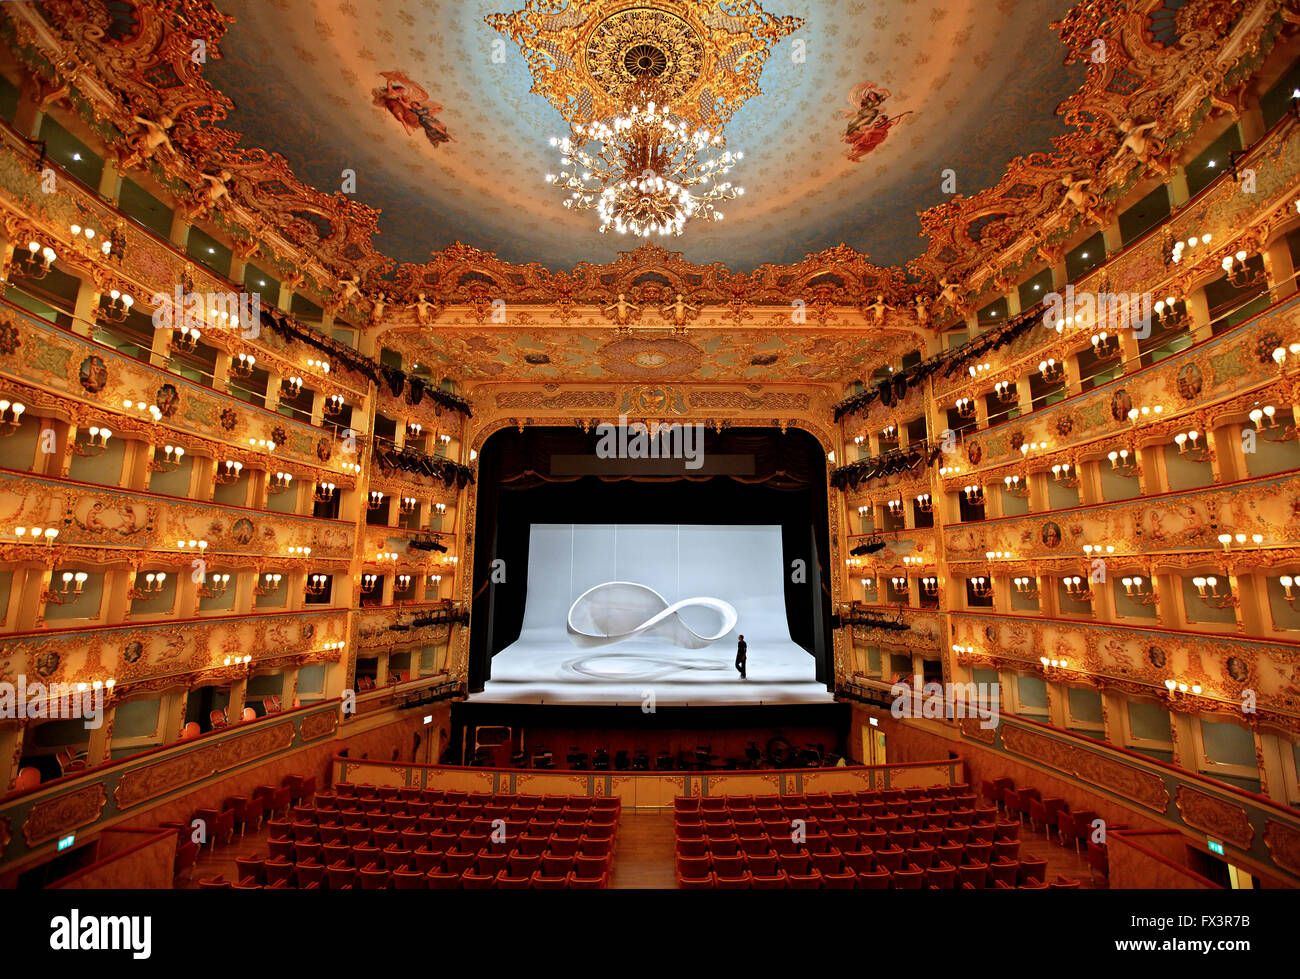 Teatro La Fenice Stock Photos & Teatro La Fenice Stock Images - Alamy